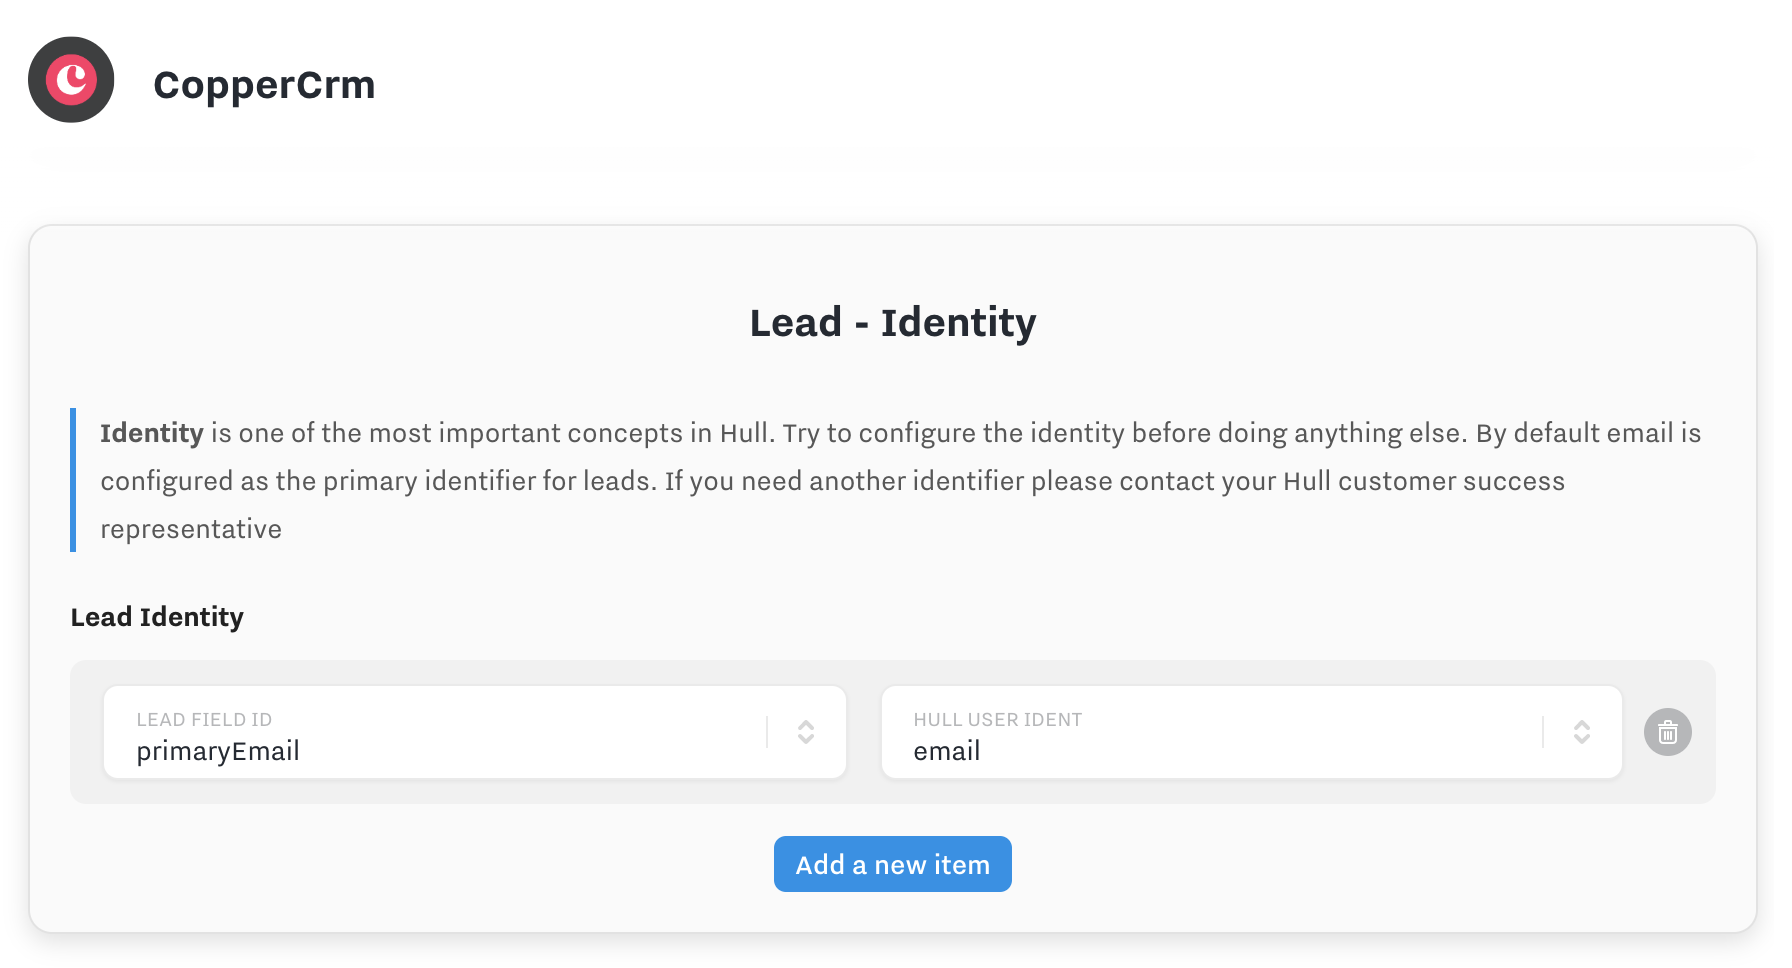 coppercrm lead identity